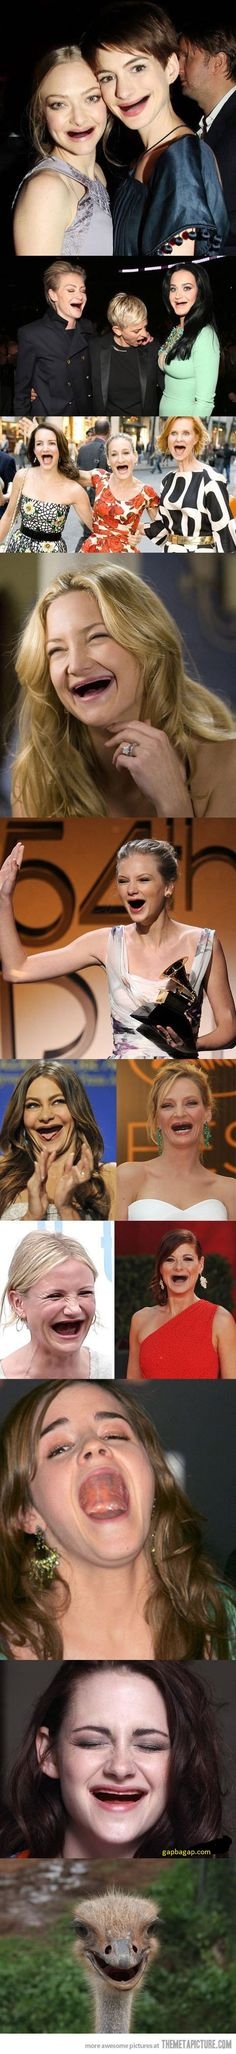 Funny Pictures Of Actress Without Teeth